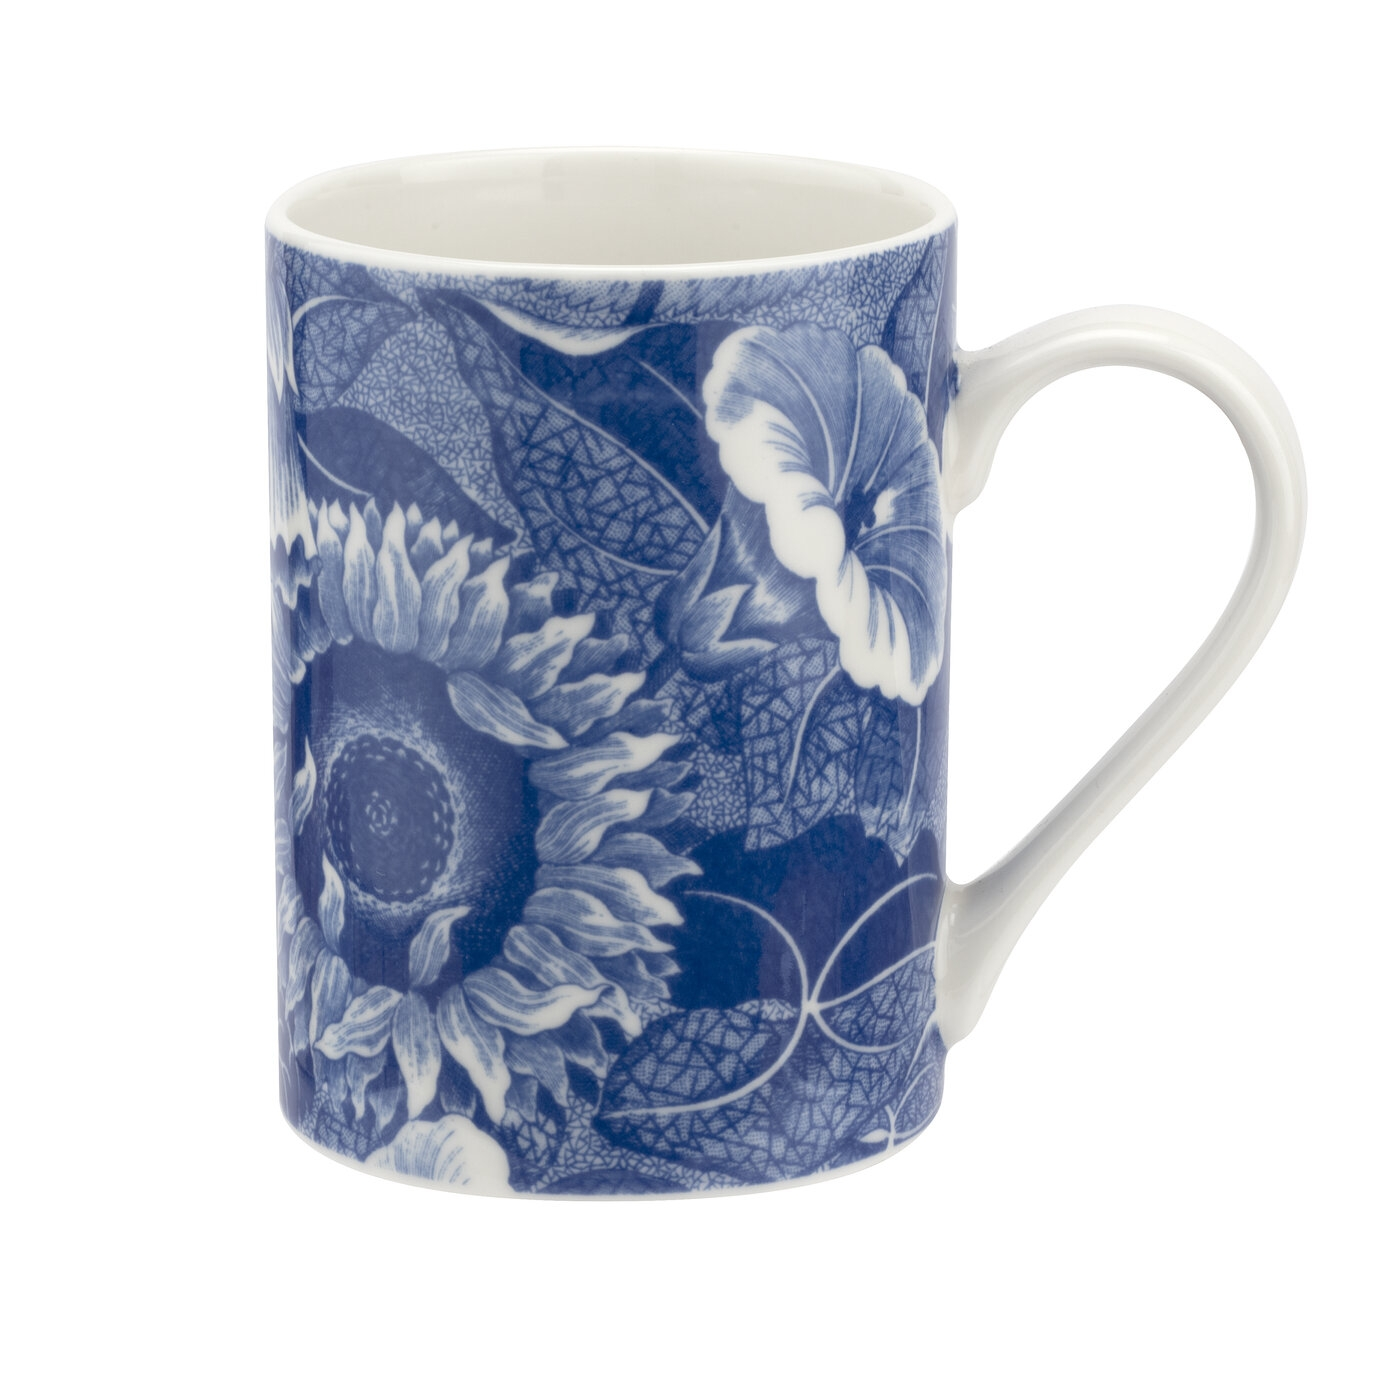 Spode Blue Room Sunflower 15 Ounce Mug image number 0